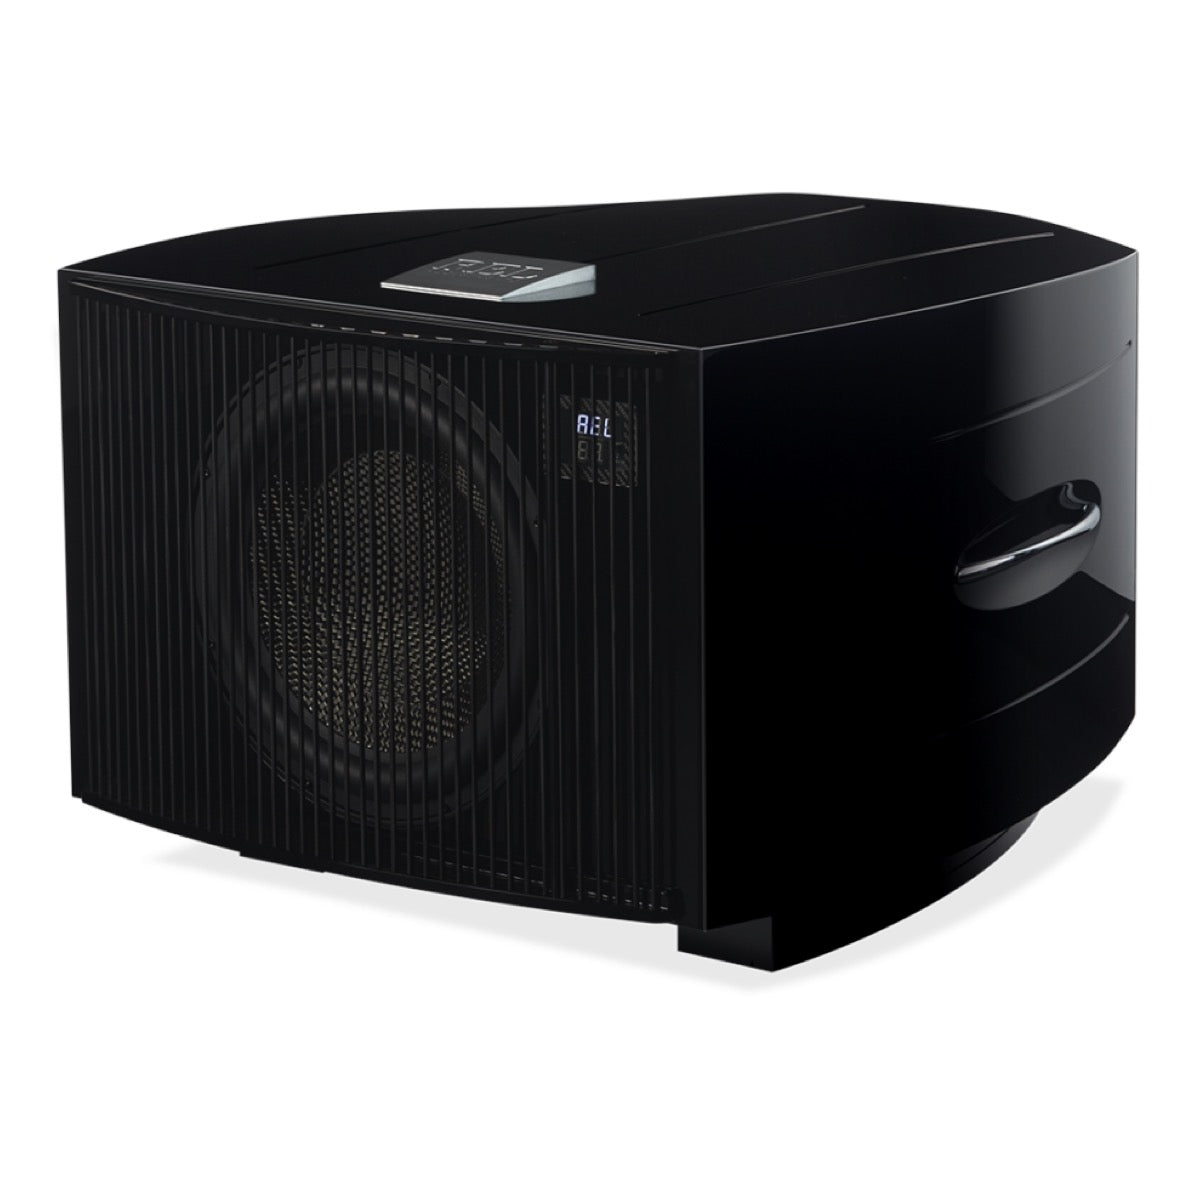 REL Acoustics No. 25 - Active Subwoofer, REL Acoustics, Subwoofer - AVStore.in